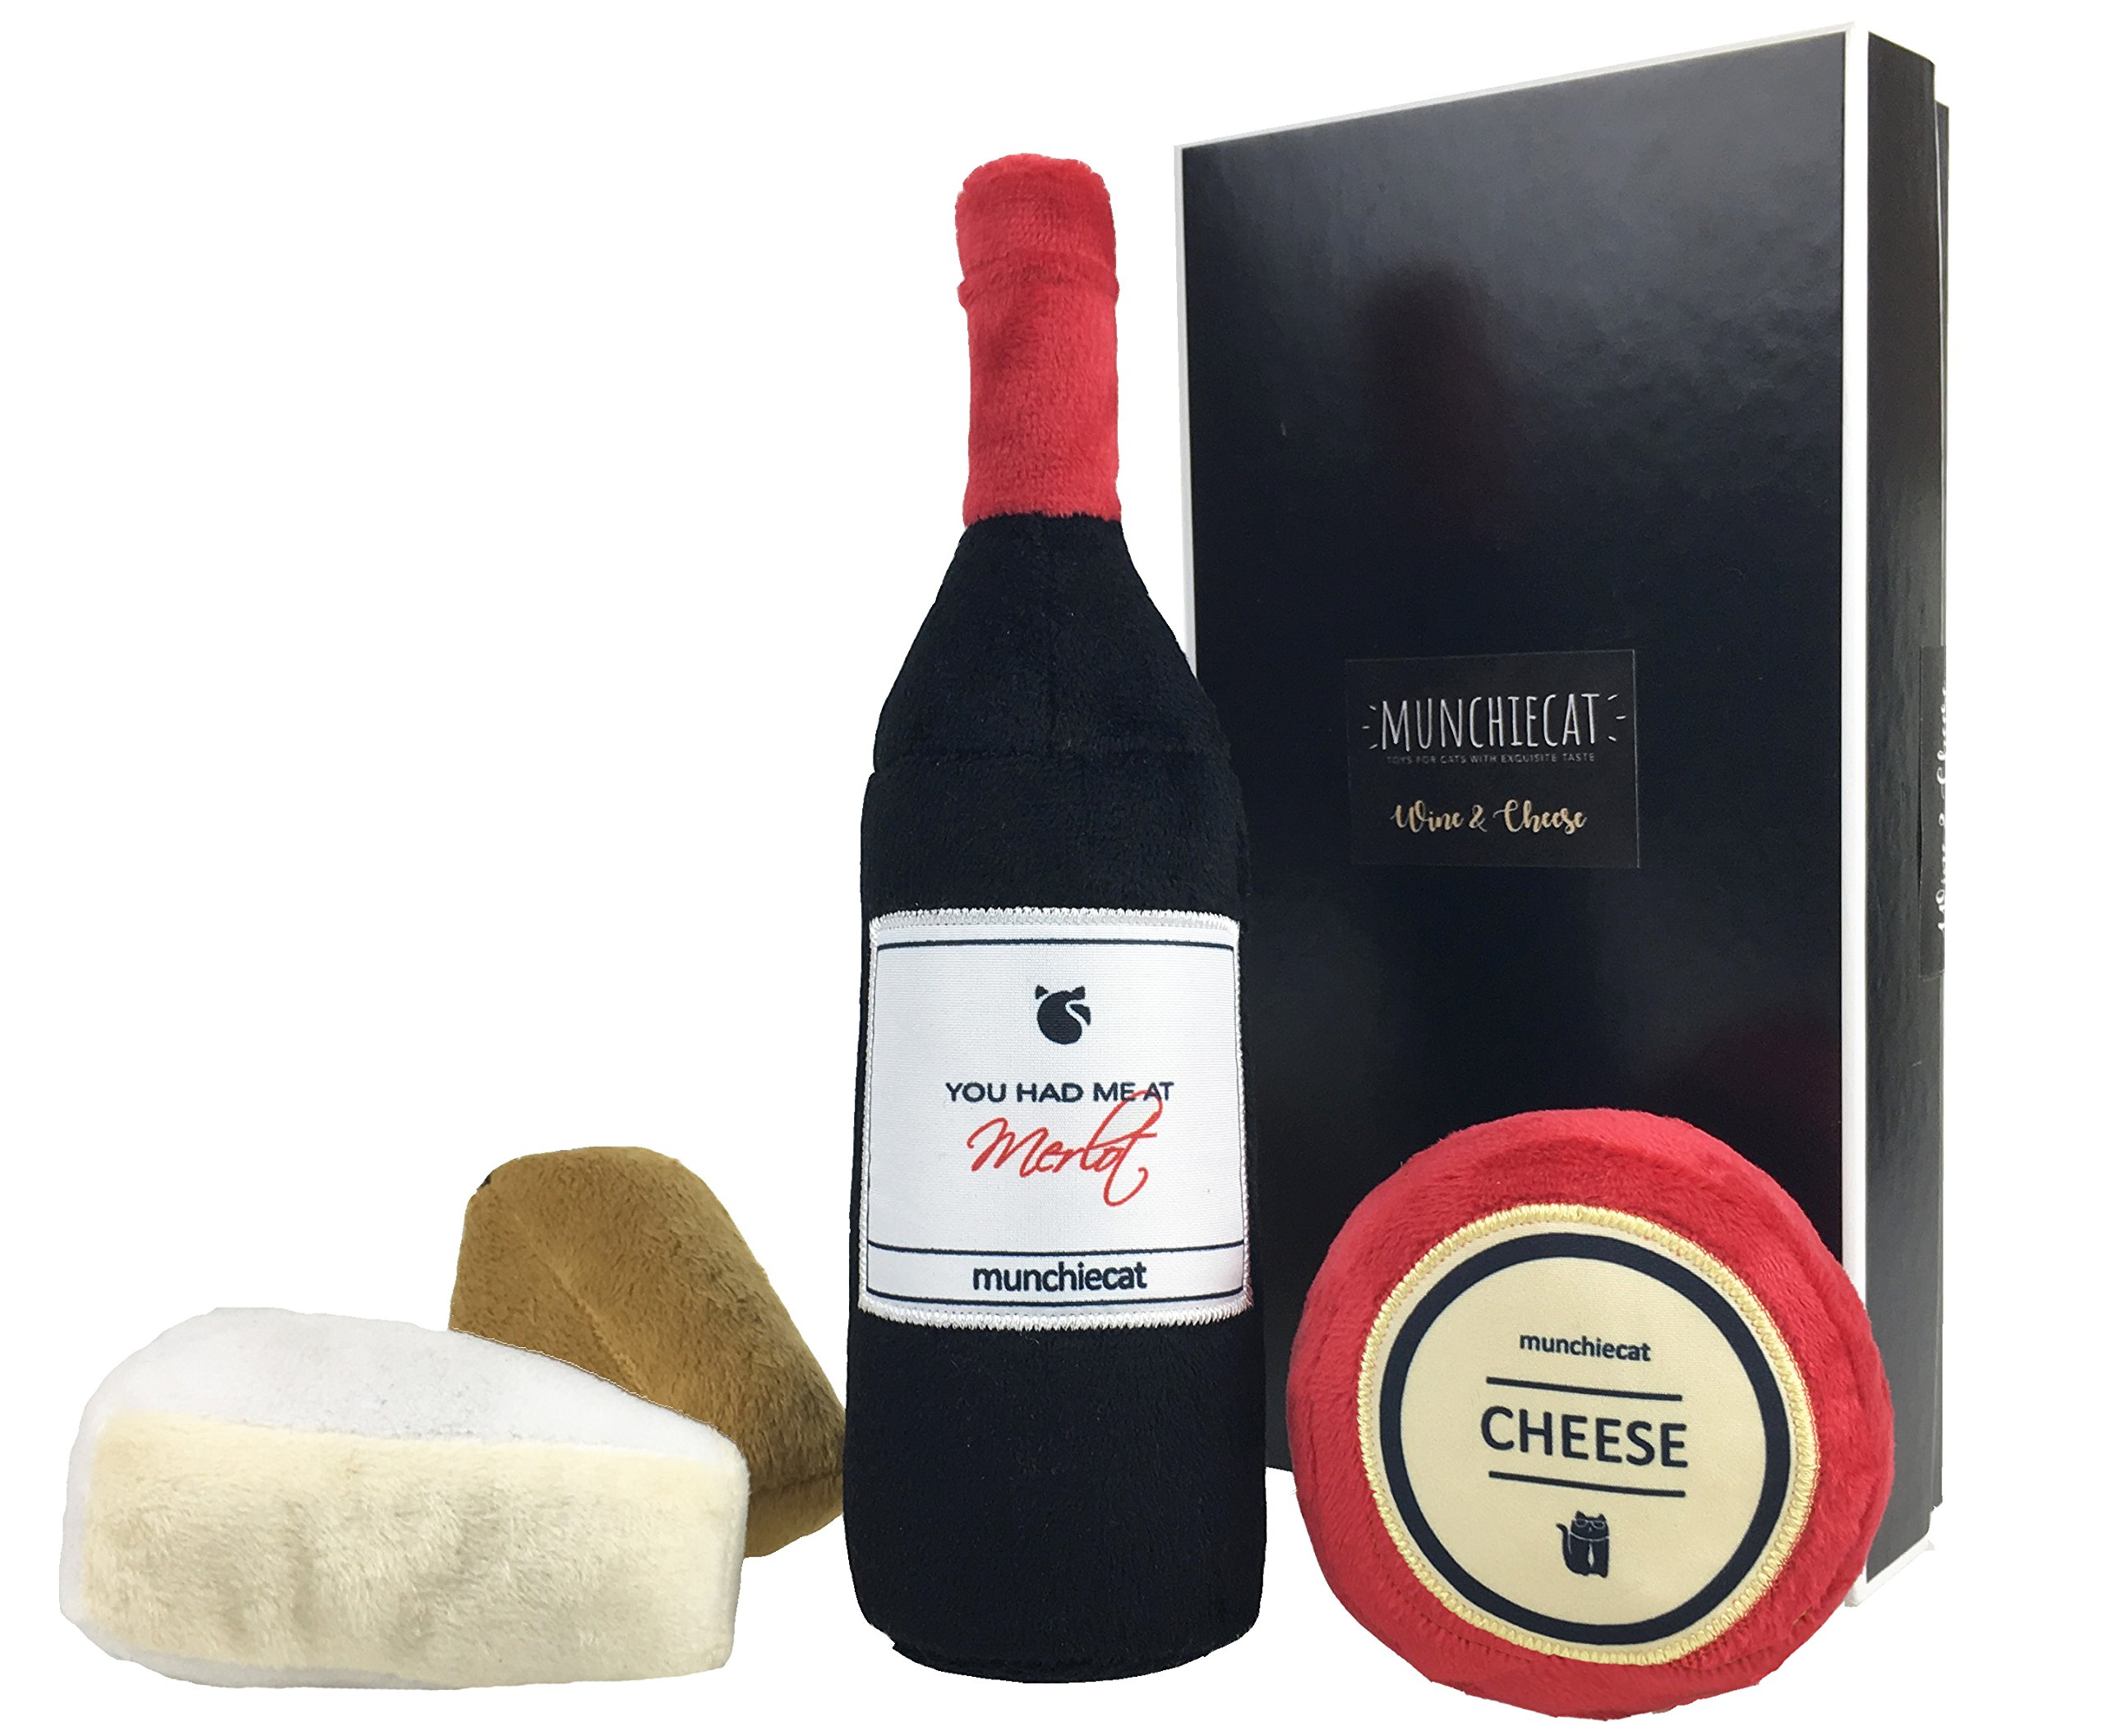 munchiecat Wine and Cheese Toys for Cats | 8'' Bottle Catnip Kicker, Cheese, Figs, Olives | Crinkle Paper Rattle Bell | Unique Gift for Cat, Wine Lovers, Housewarming Gift (4-Pc Gift Set)